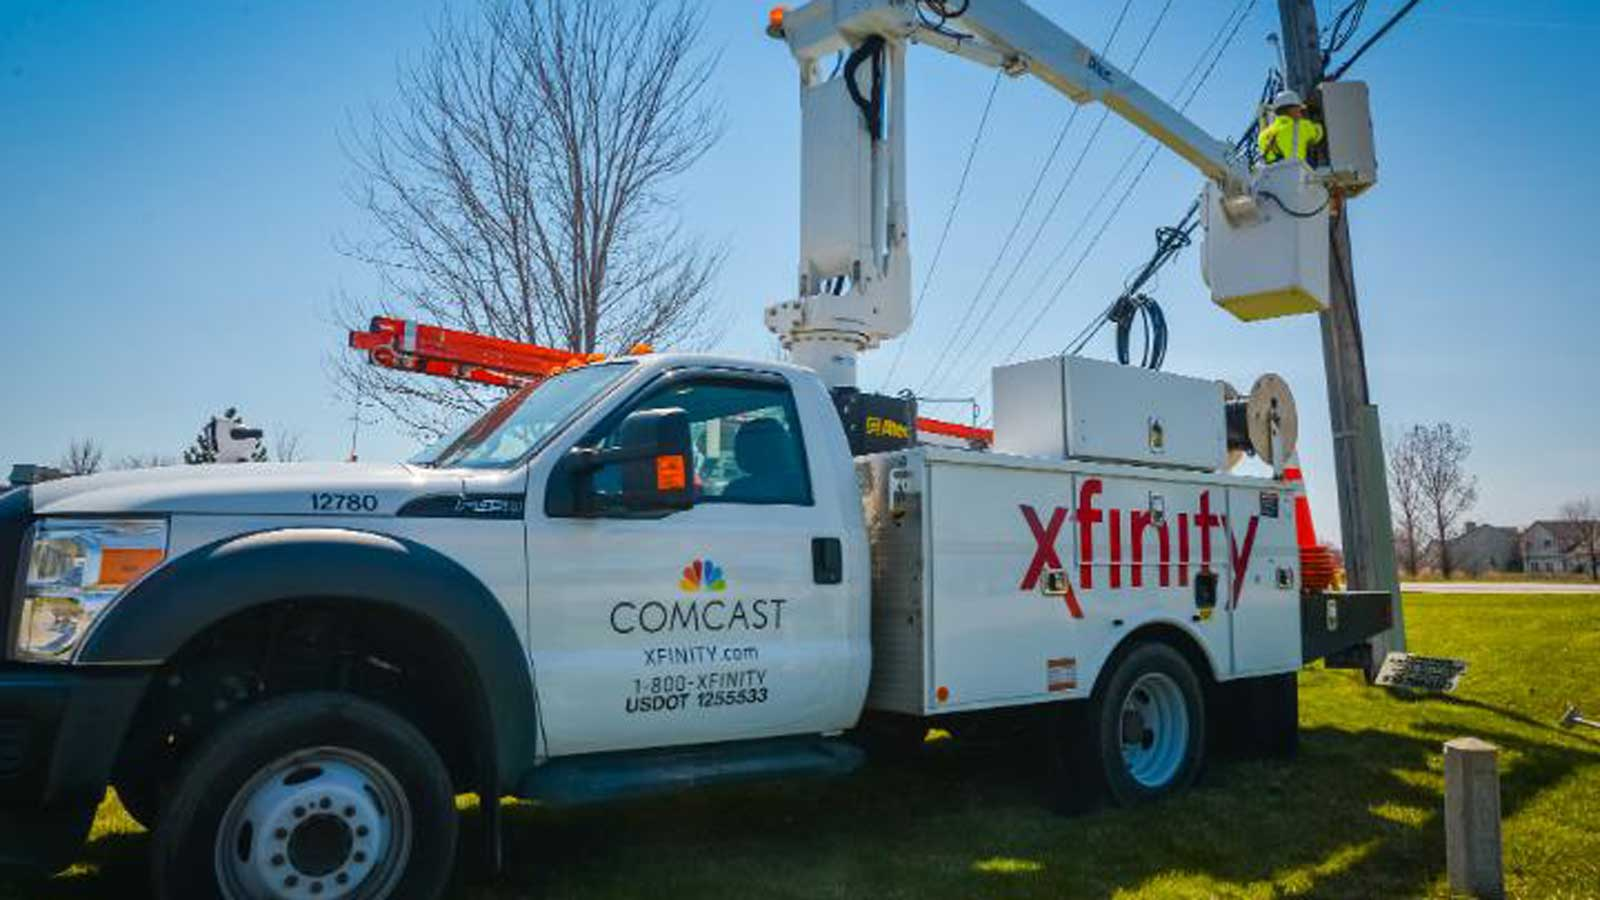 Comcast tech on truck at wires